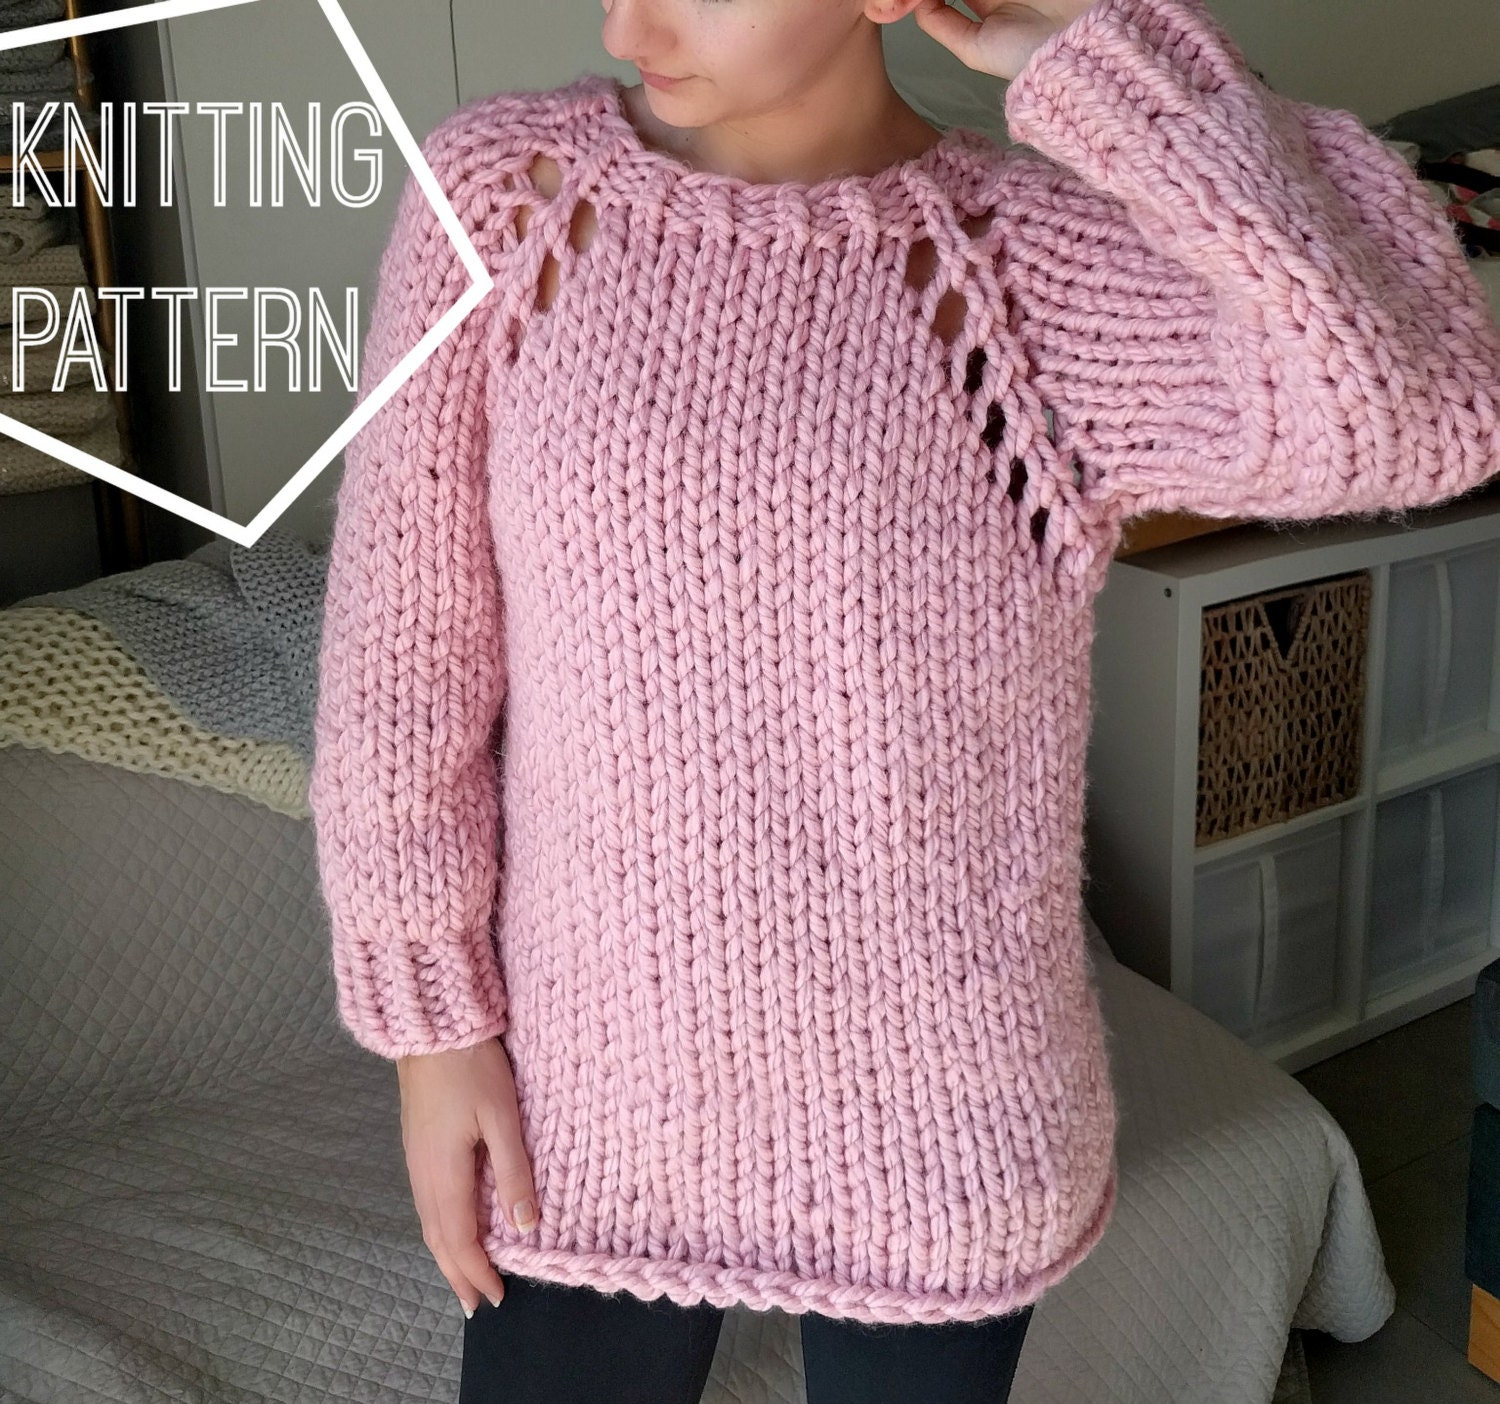 Chunky Knit Jumper Pattern : Chunky Knit Sweater Pattern, Top Down Raglan Sweater Pattern, Super Chunky Kn...